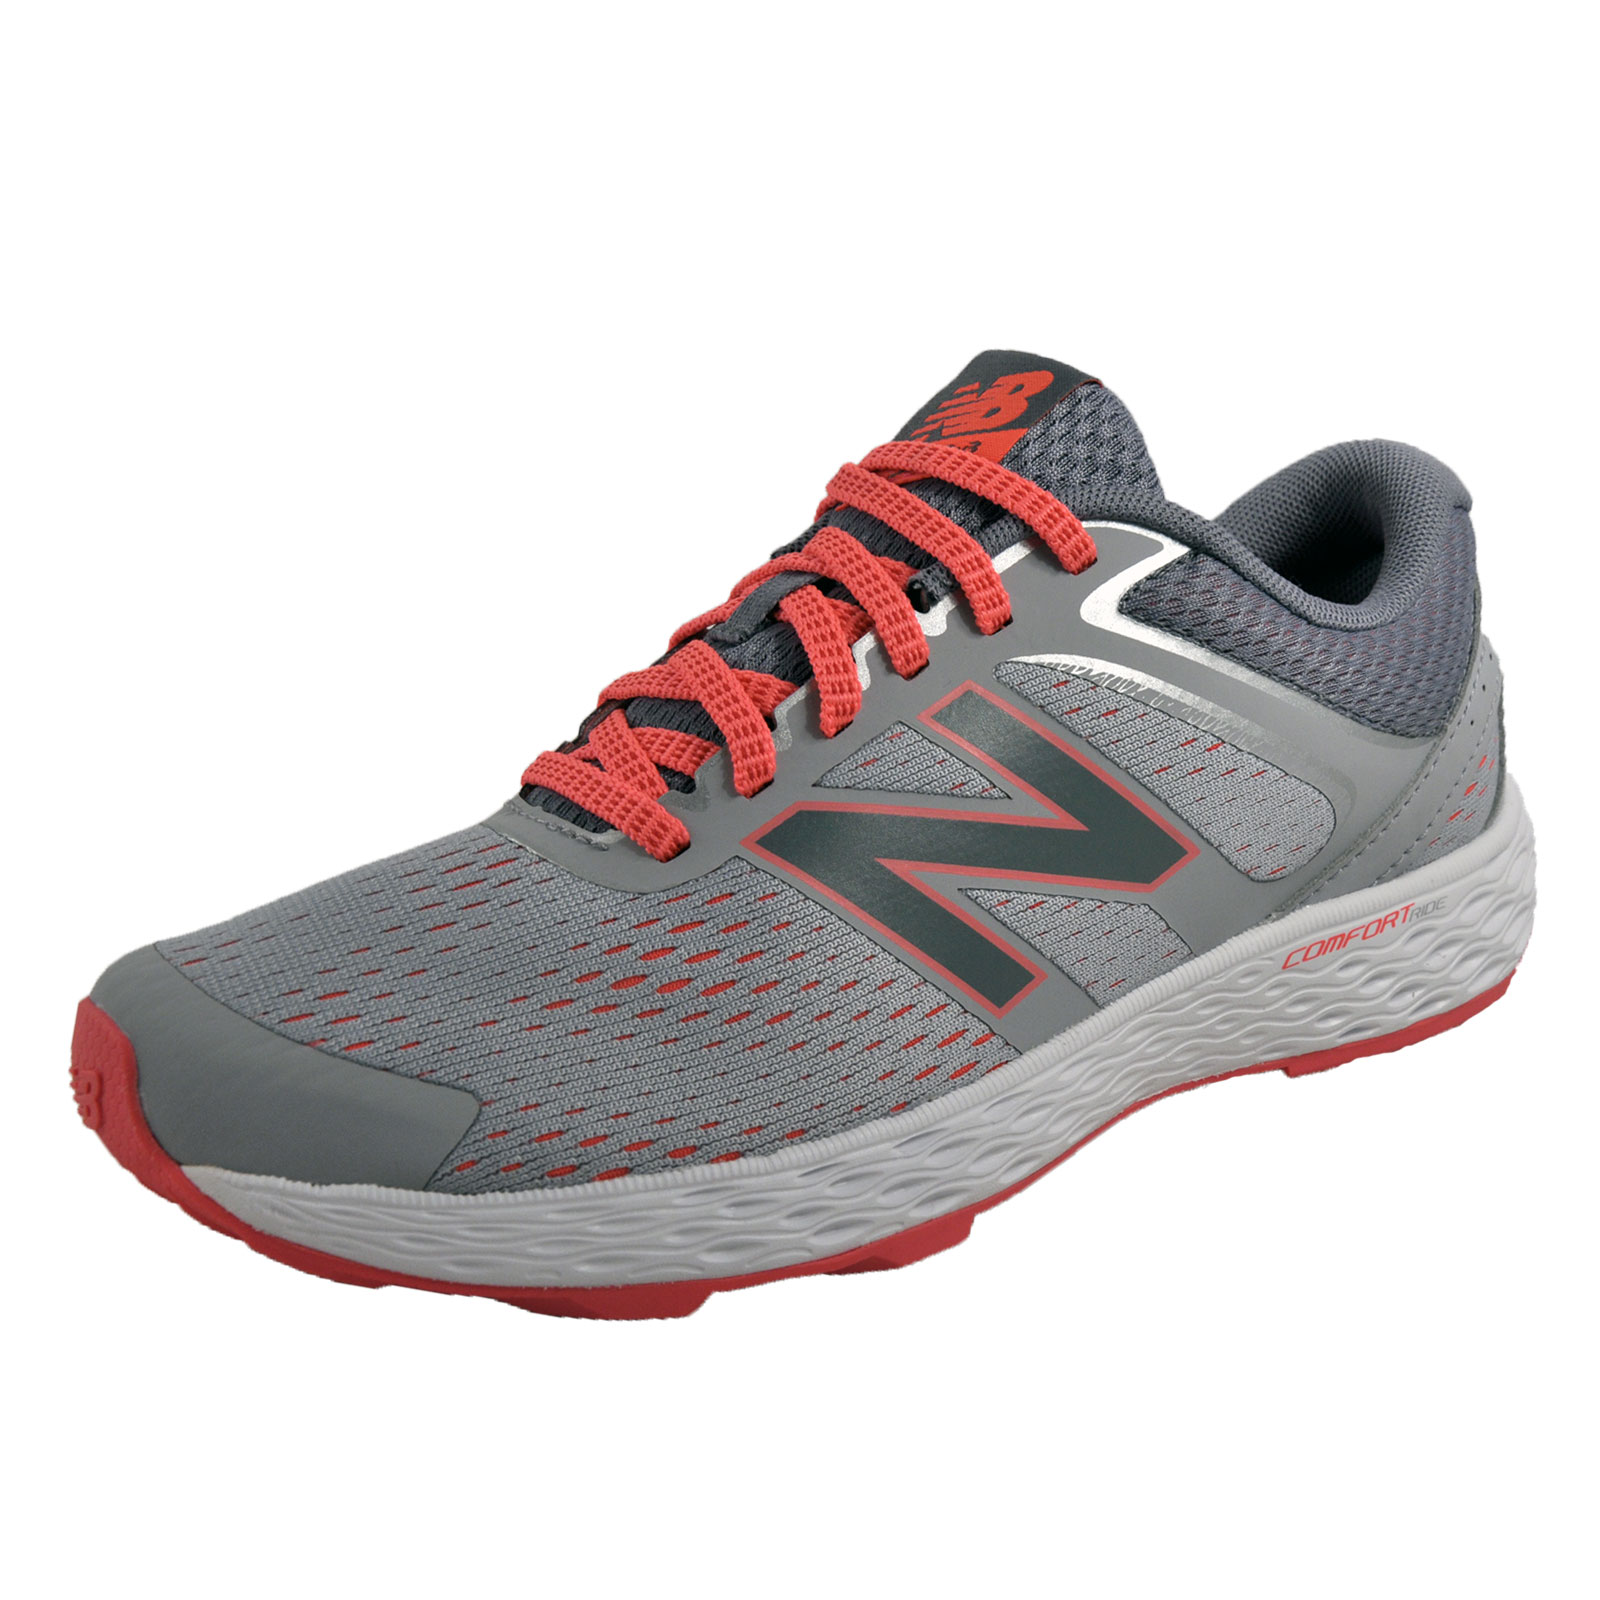 new balance 520 v3 womens comfort ride running shoes fitness trainers grey ebay. Black Bedroom Furniture Sets. Home Design Ideas